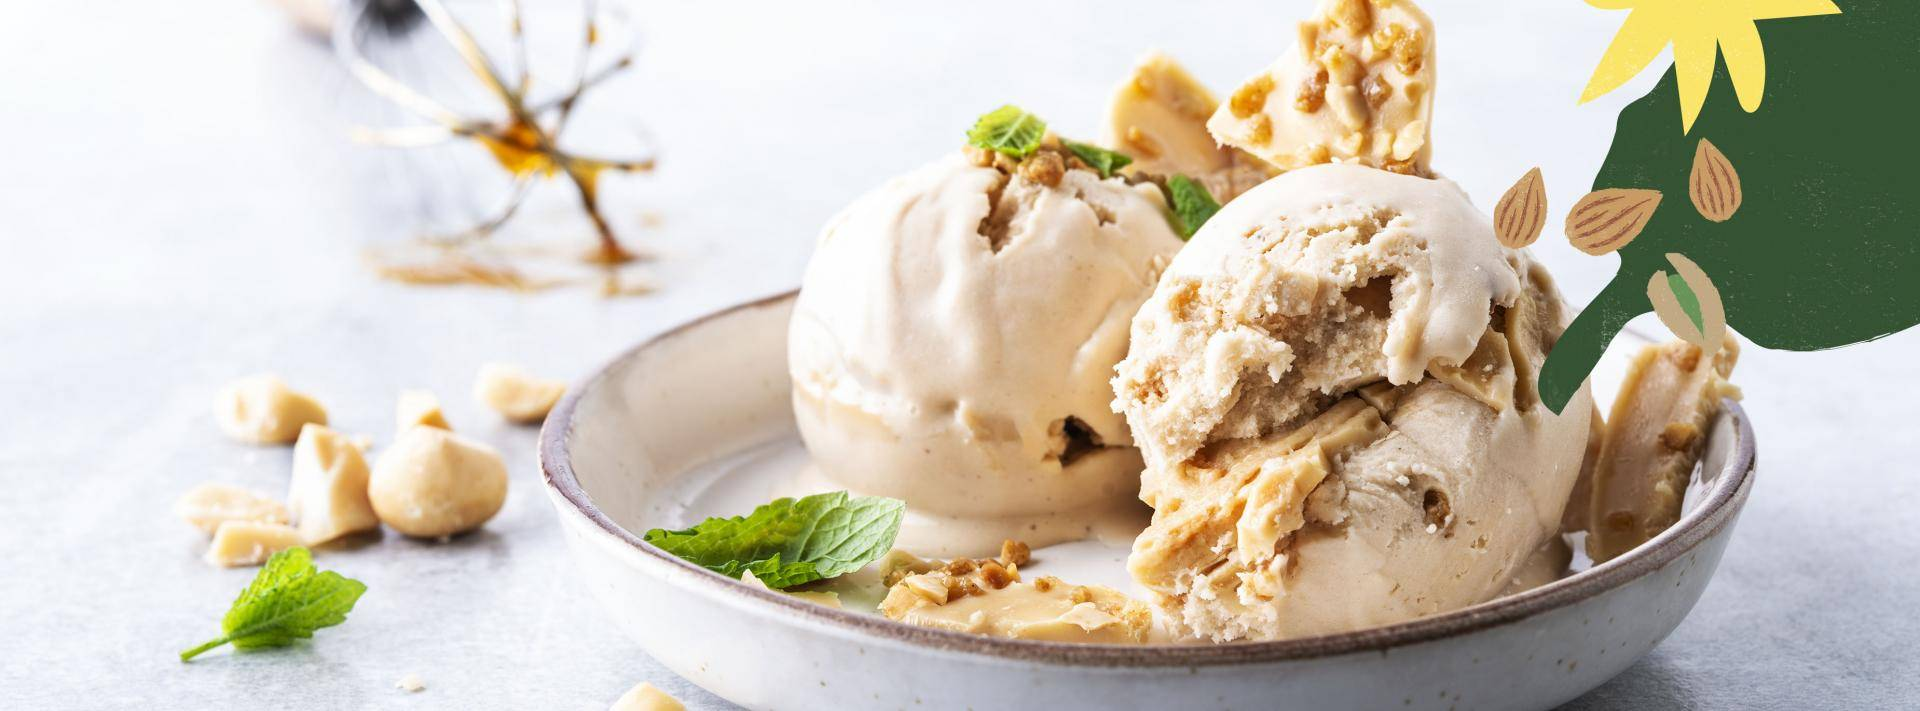 Dairy-free vegan ice cream